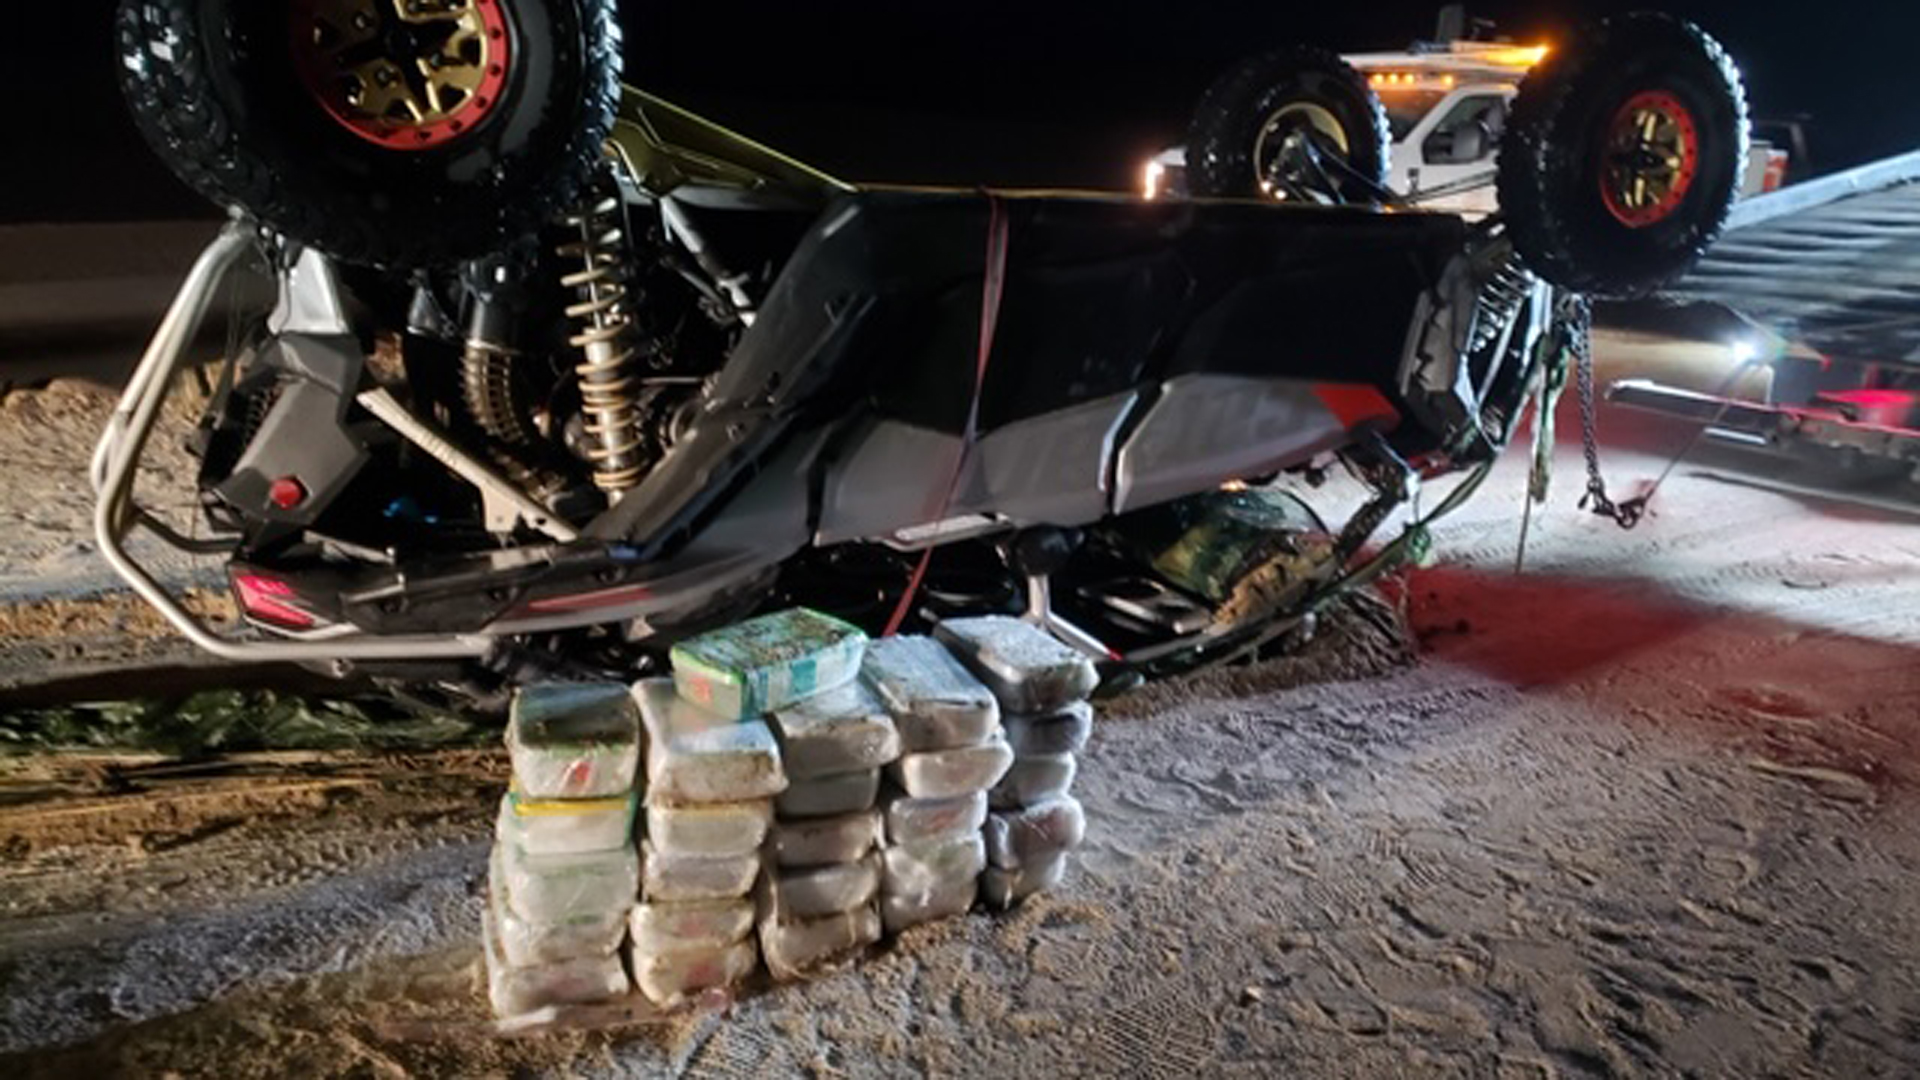 A photo of a damaged off-road vehicle used to retrieve methamphetamine near the Salton Sea is seen in a photo released by the U.S. Attorney's Office for the Central District of California on Dec. 16, 2019.